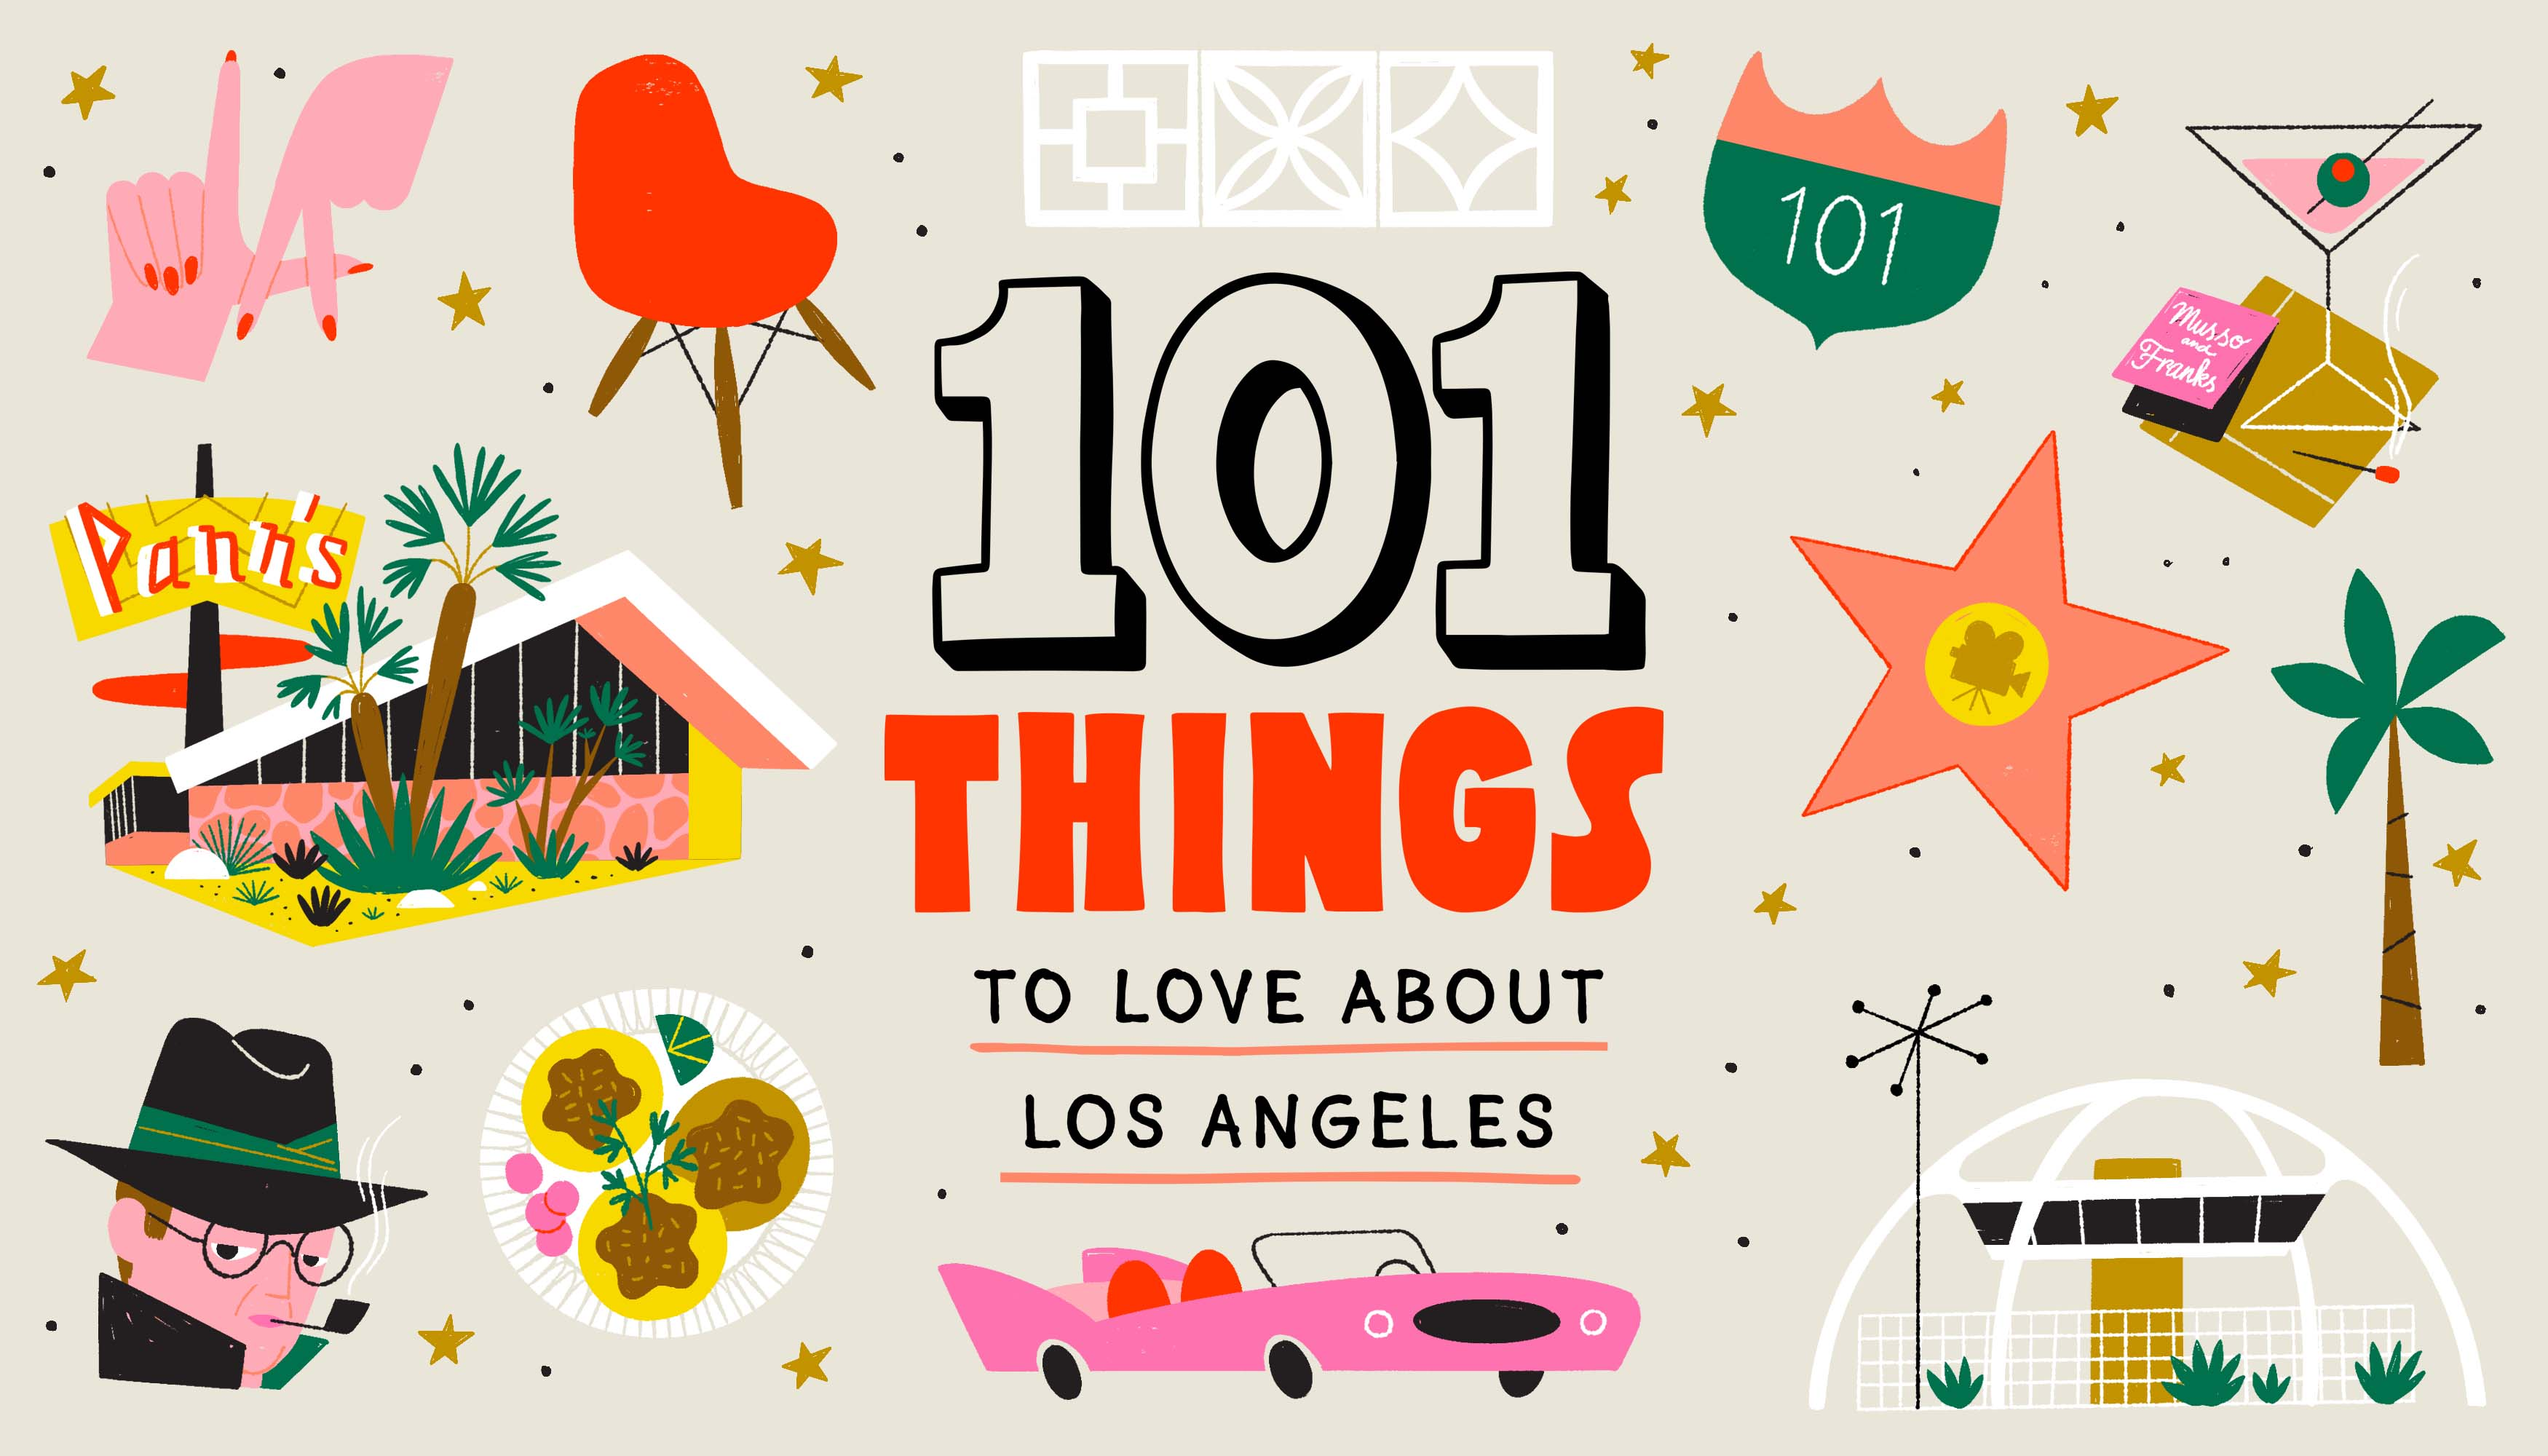 101 things to love about Los Angeles